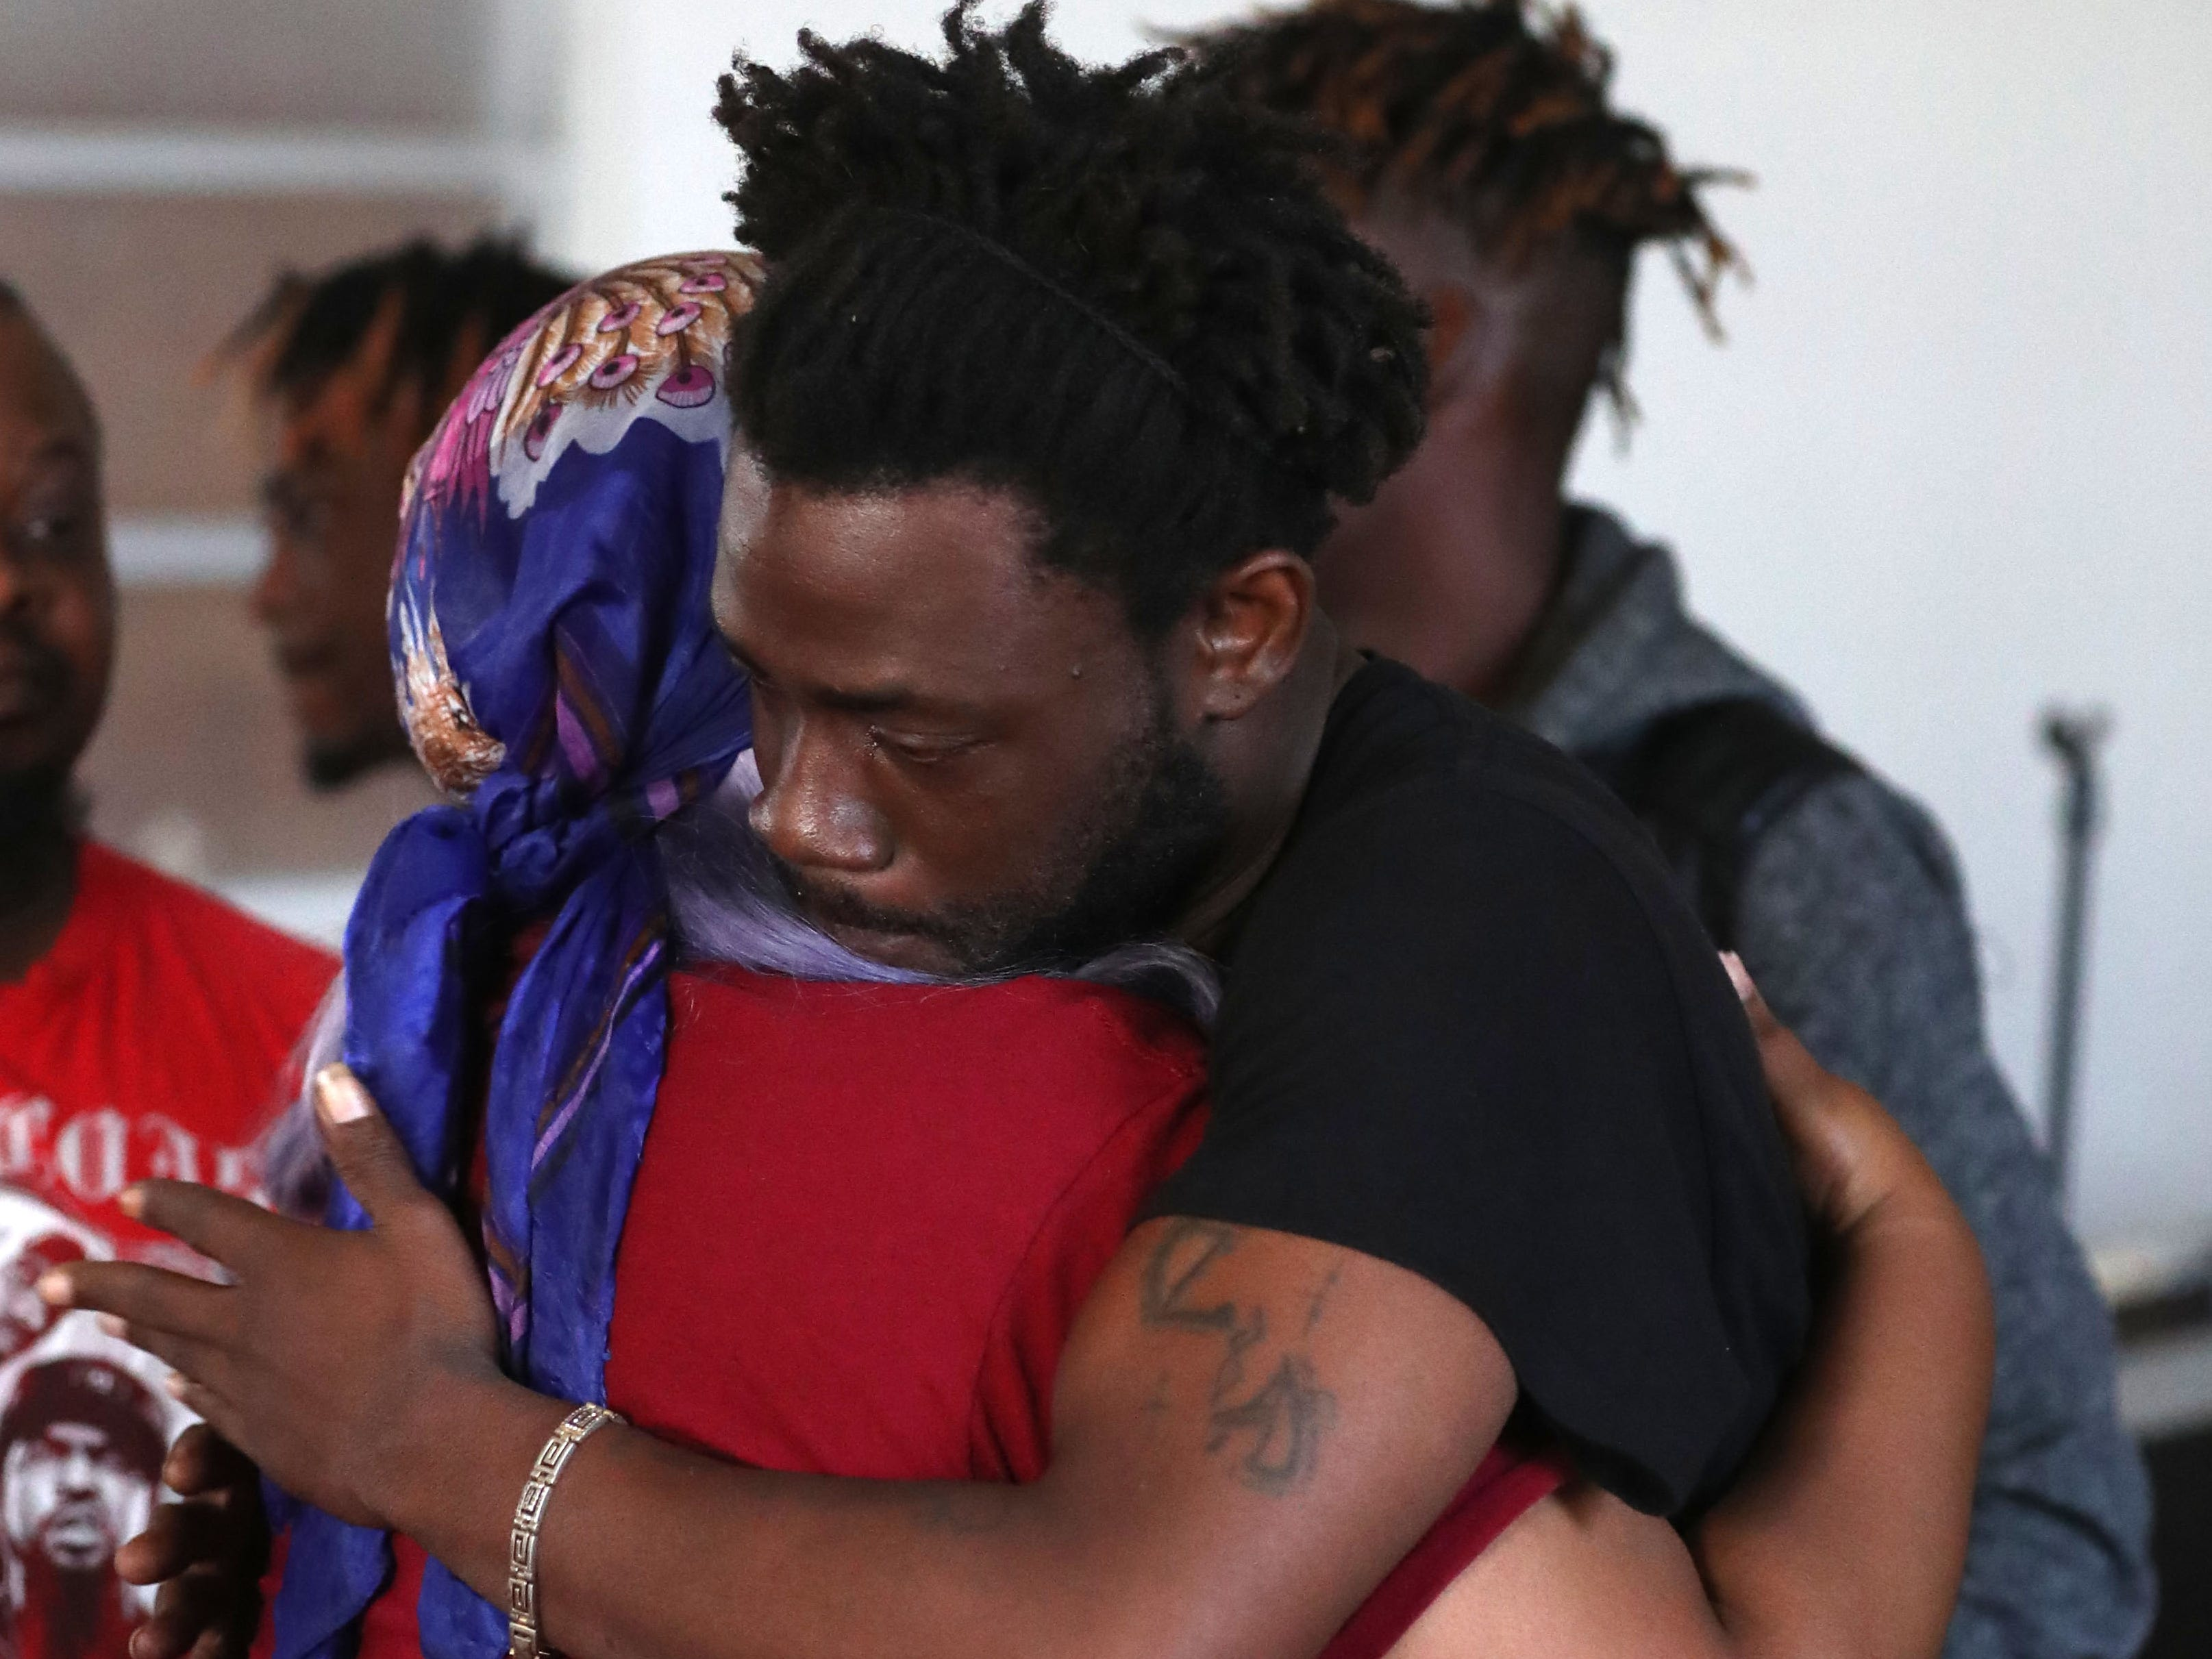 Lawrence Williams, brother of Demashell Bass, a woman who could not receive medical attention and died during the hurricane, 33, receives condolences from a church member at the Dream, Vision, and Destiny (DVD) Ministry in Gretna, Fla., on Sunday Oct. 14, 2018, after Hurricane Michael hits the Florida panhandle.